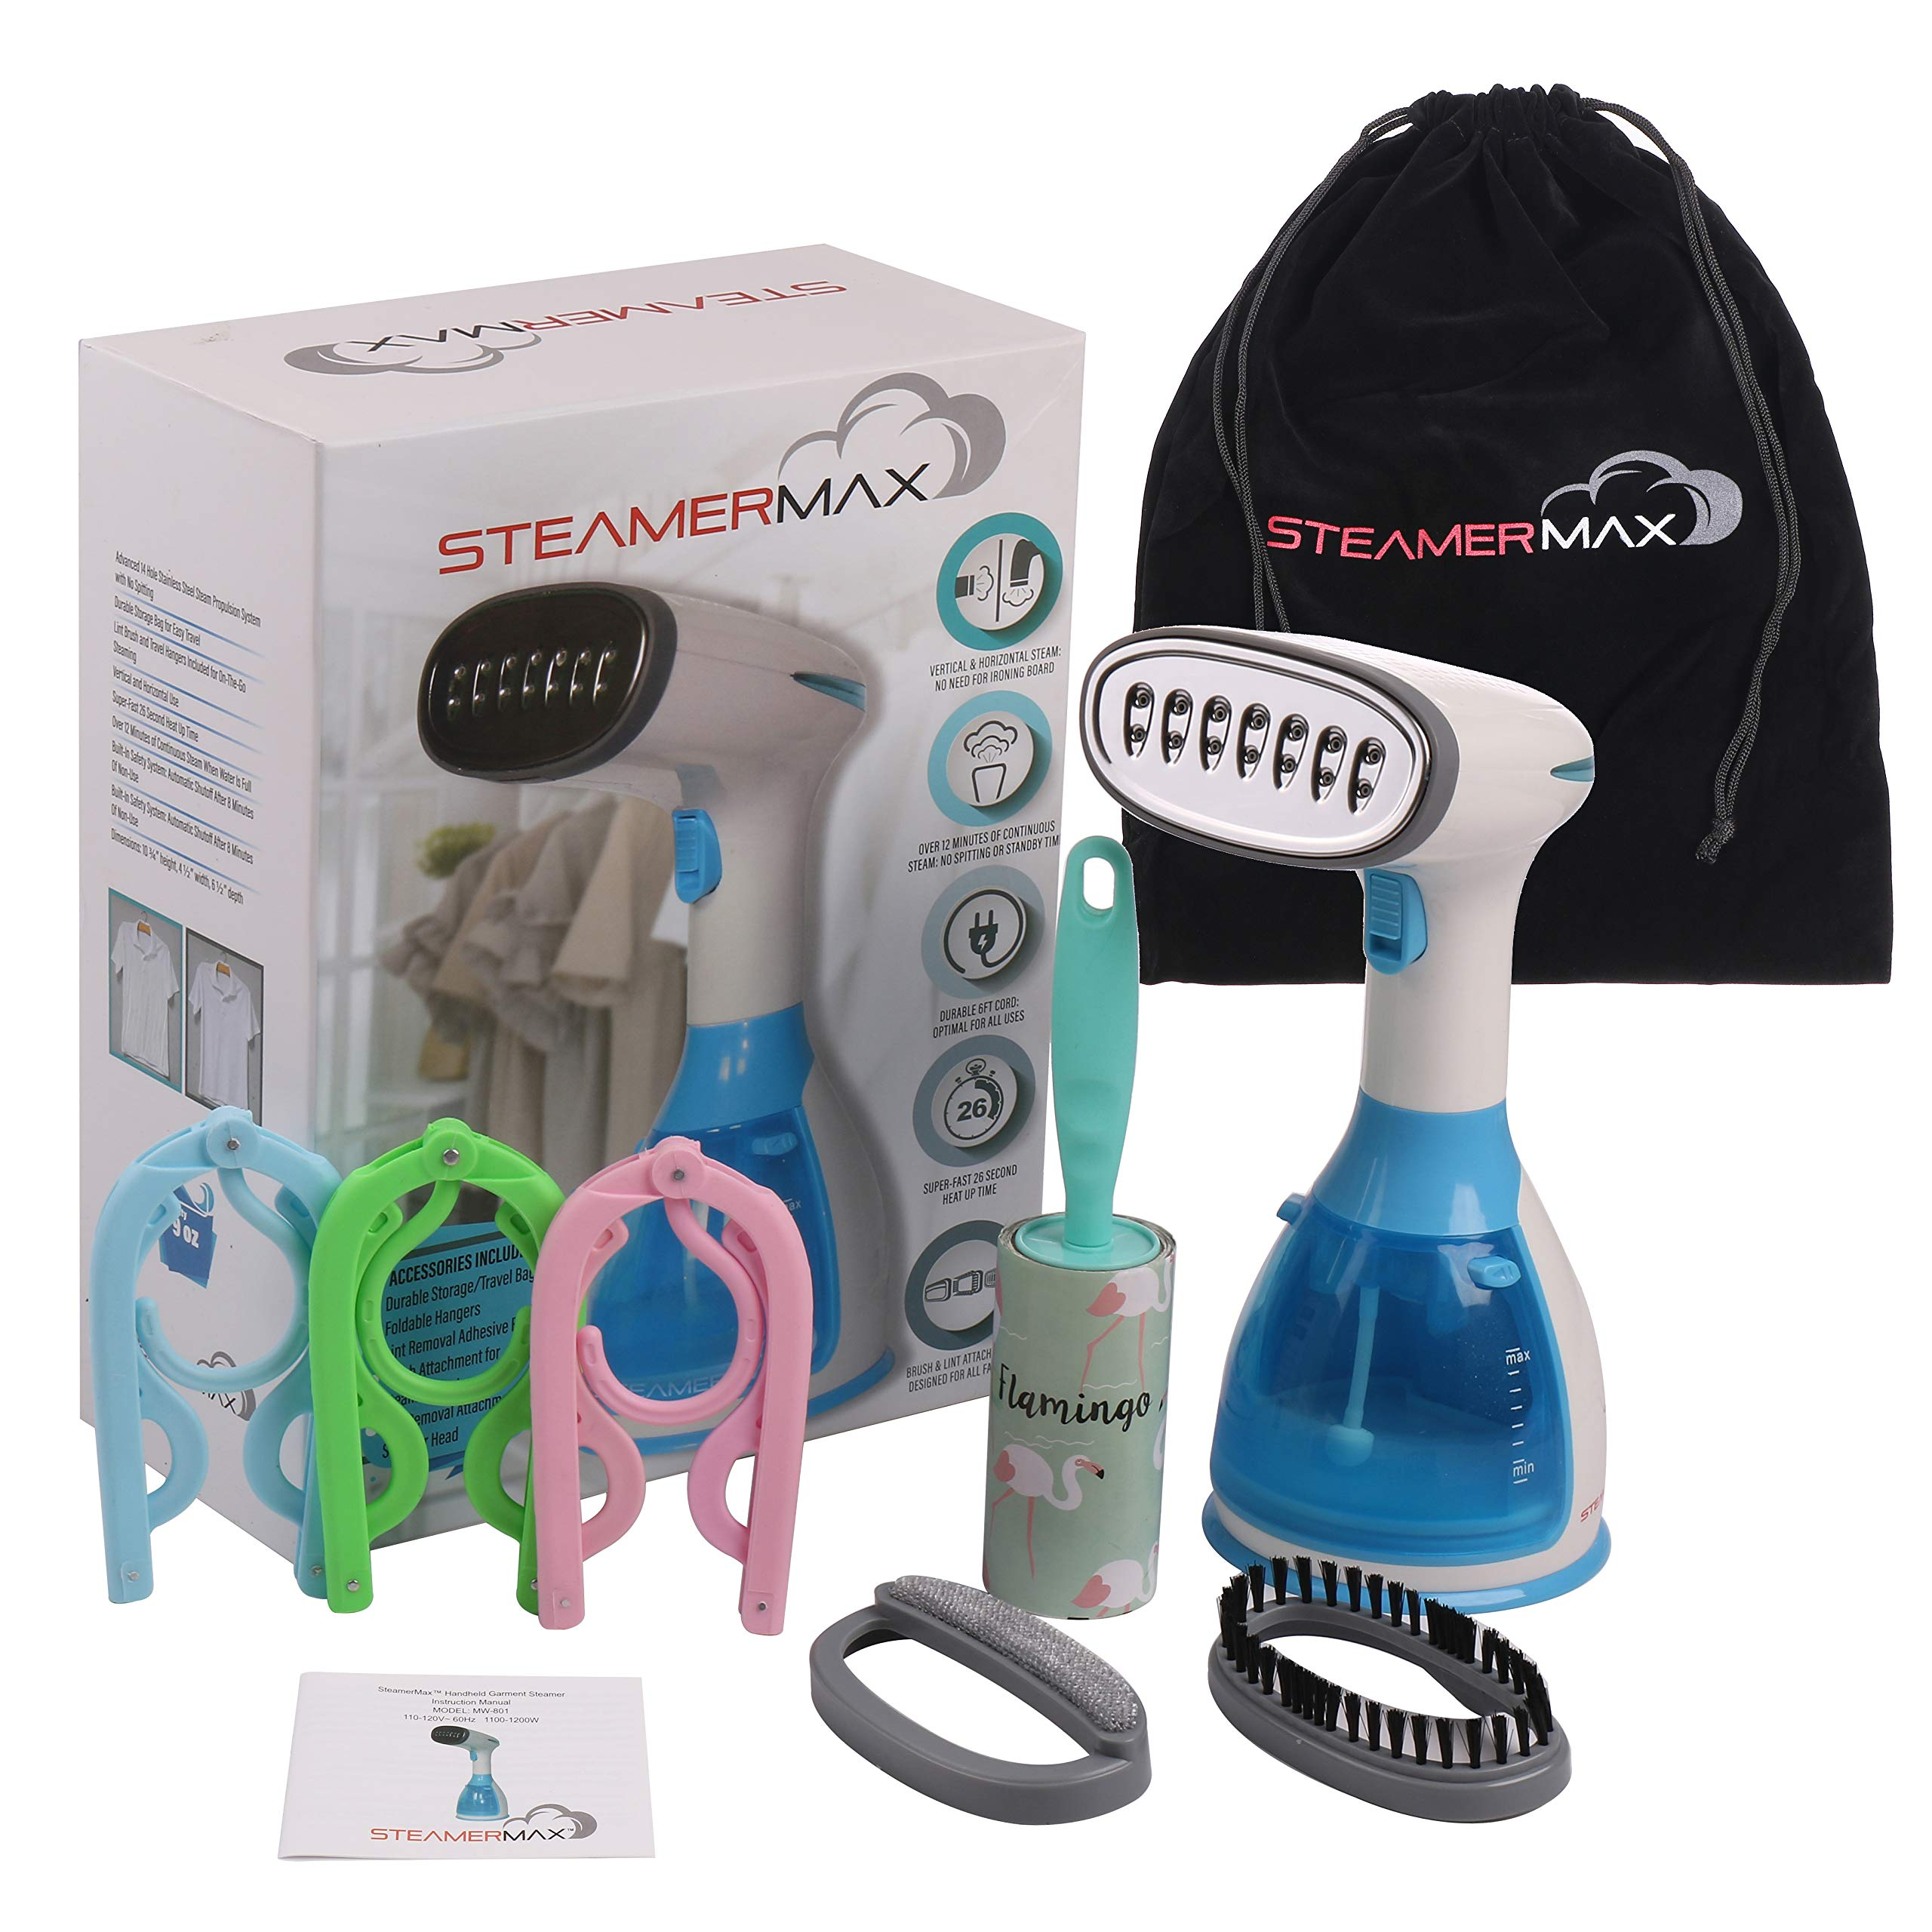 SteamerMax Handheld Garment Steamer for Clothes - Portable Yet Powerful Steam Removes Wrinkles from Garments with Ultra Fast Heating